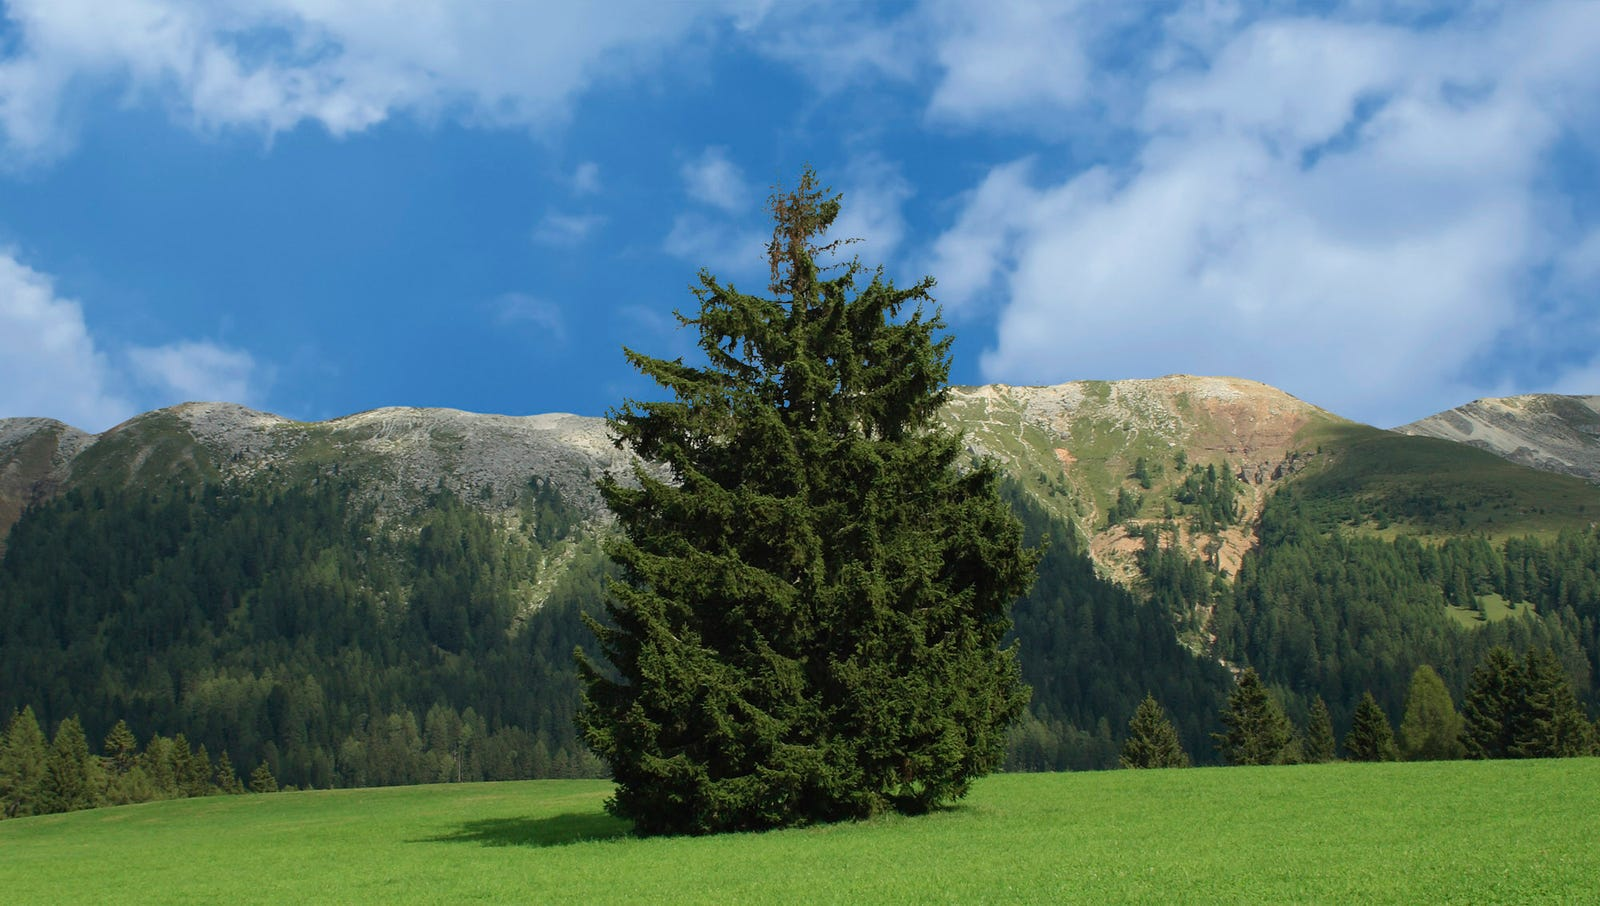 Majestic Pine Recruited For Yosemite By National Park Headhunters